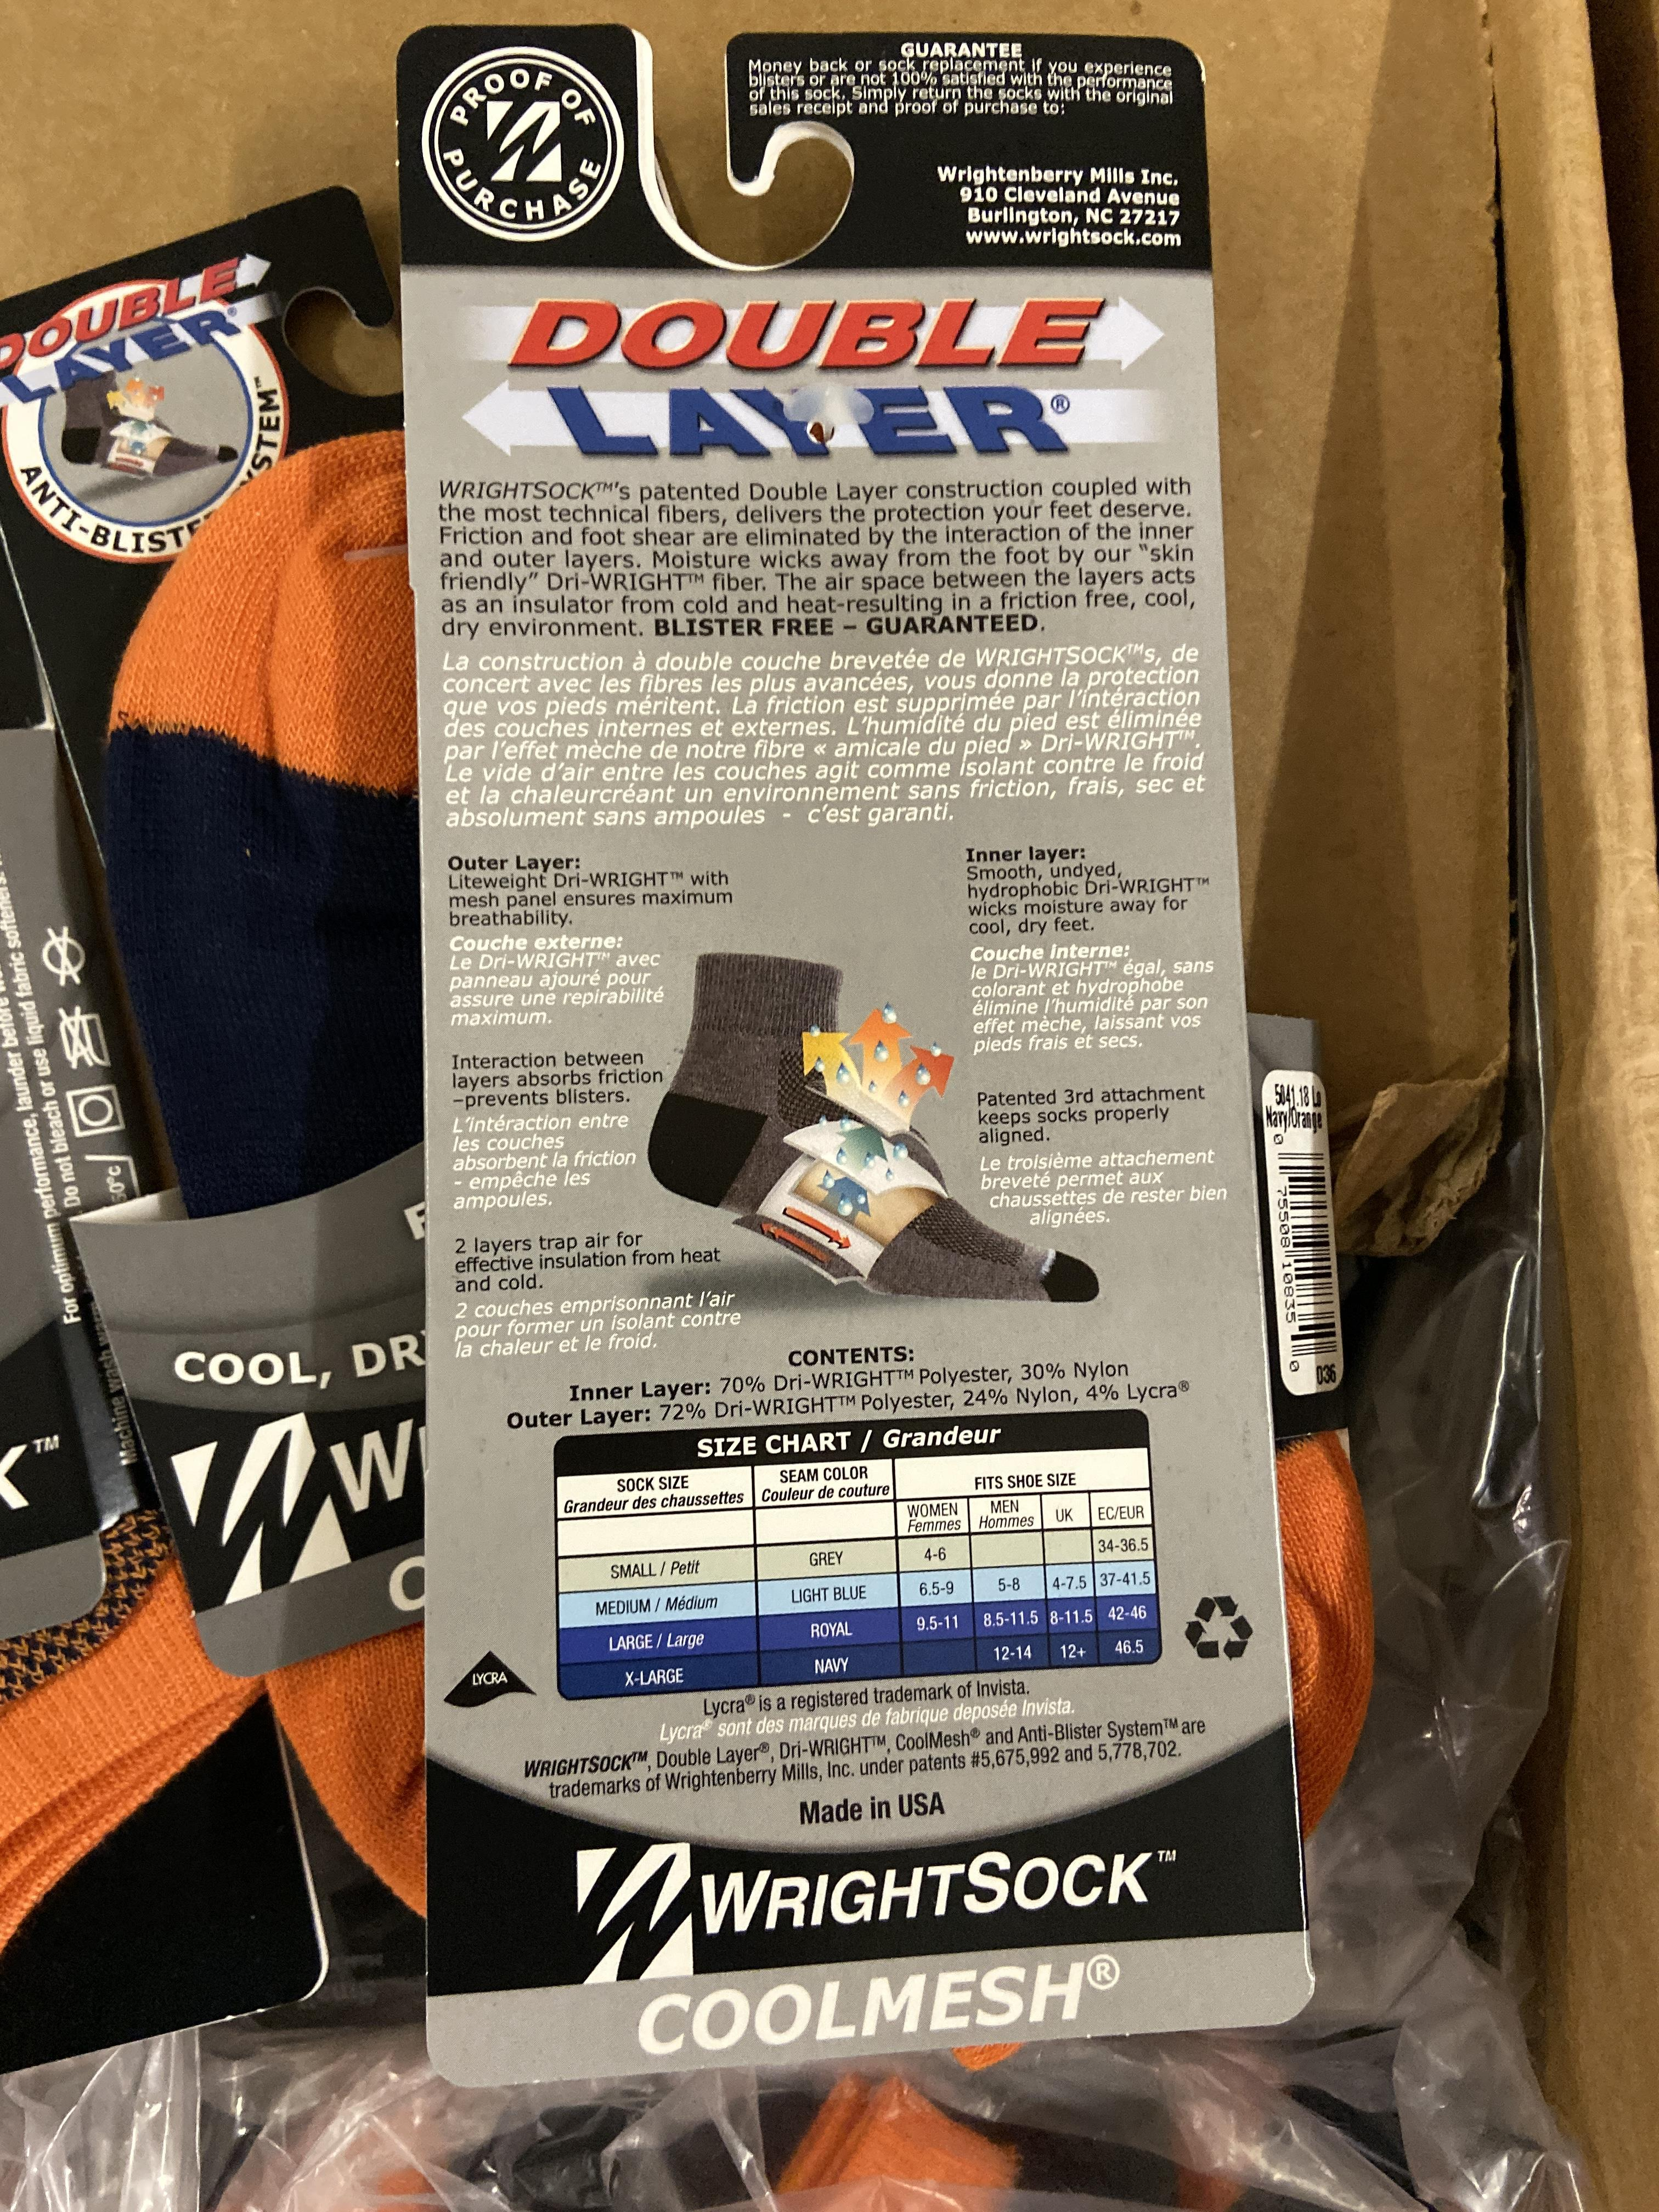 Lot 8 - 250+ packs of New Socks, Wrightsock Coolmesh, Double Layer, Orange/Black Lot has approx 250 packs,